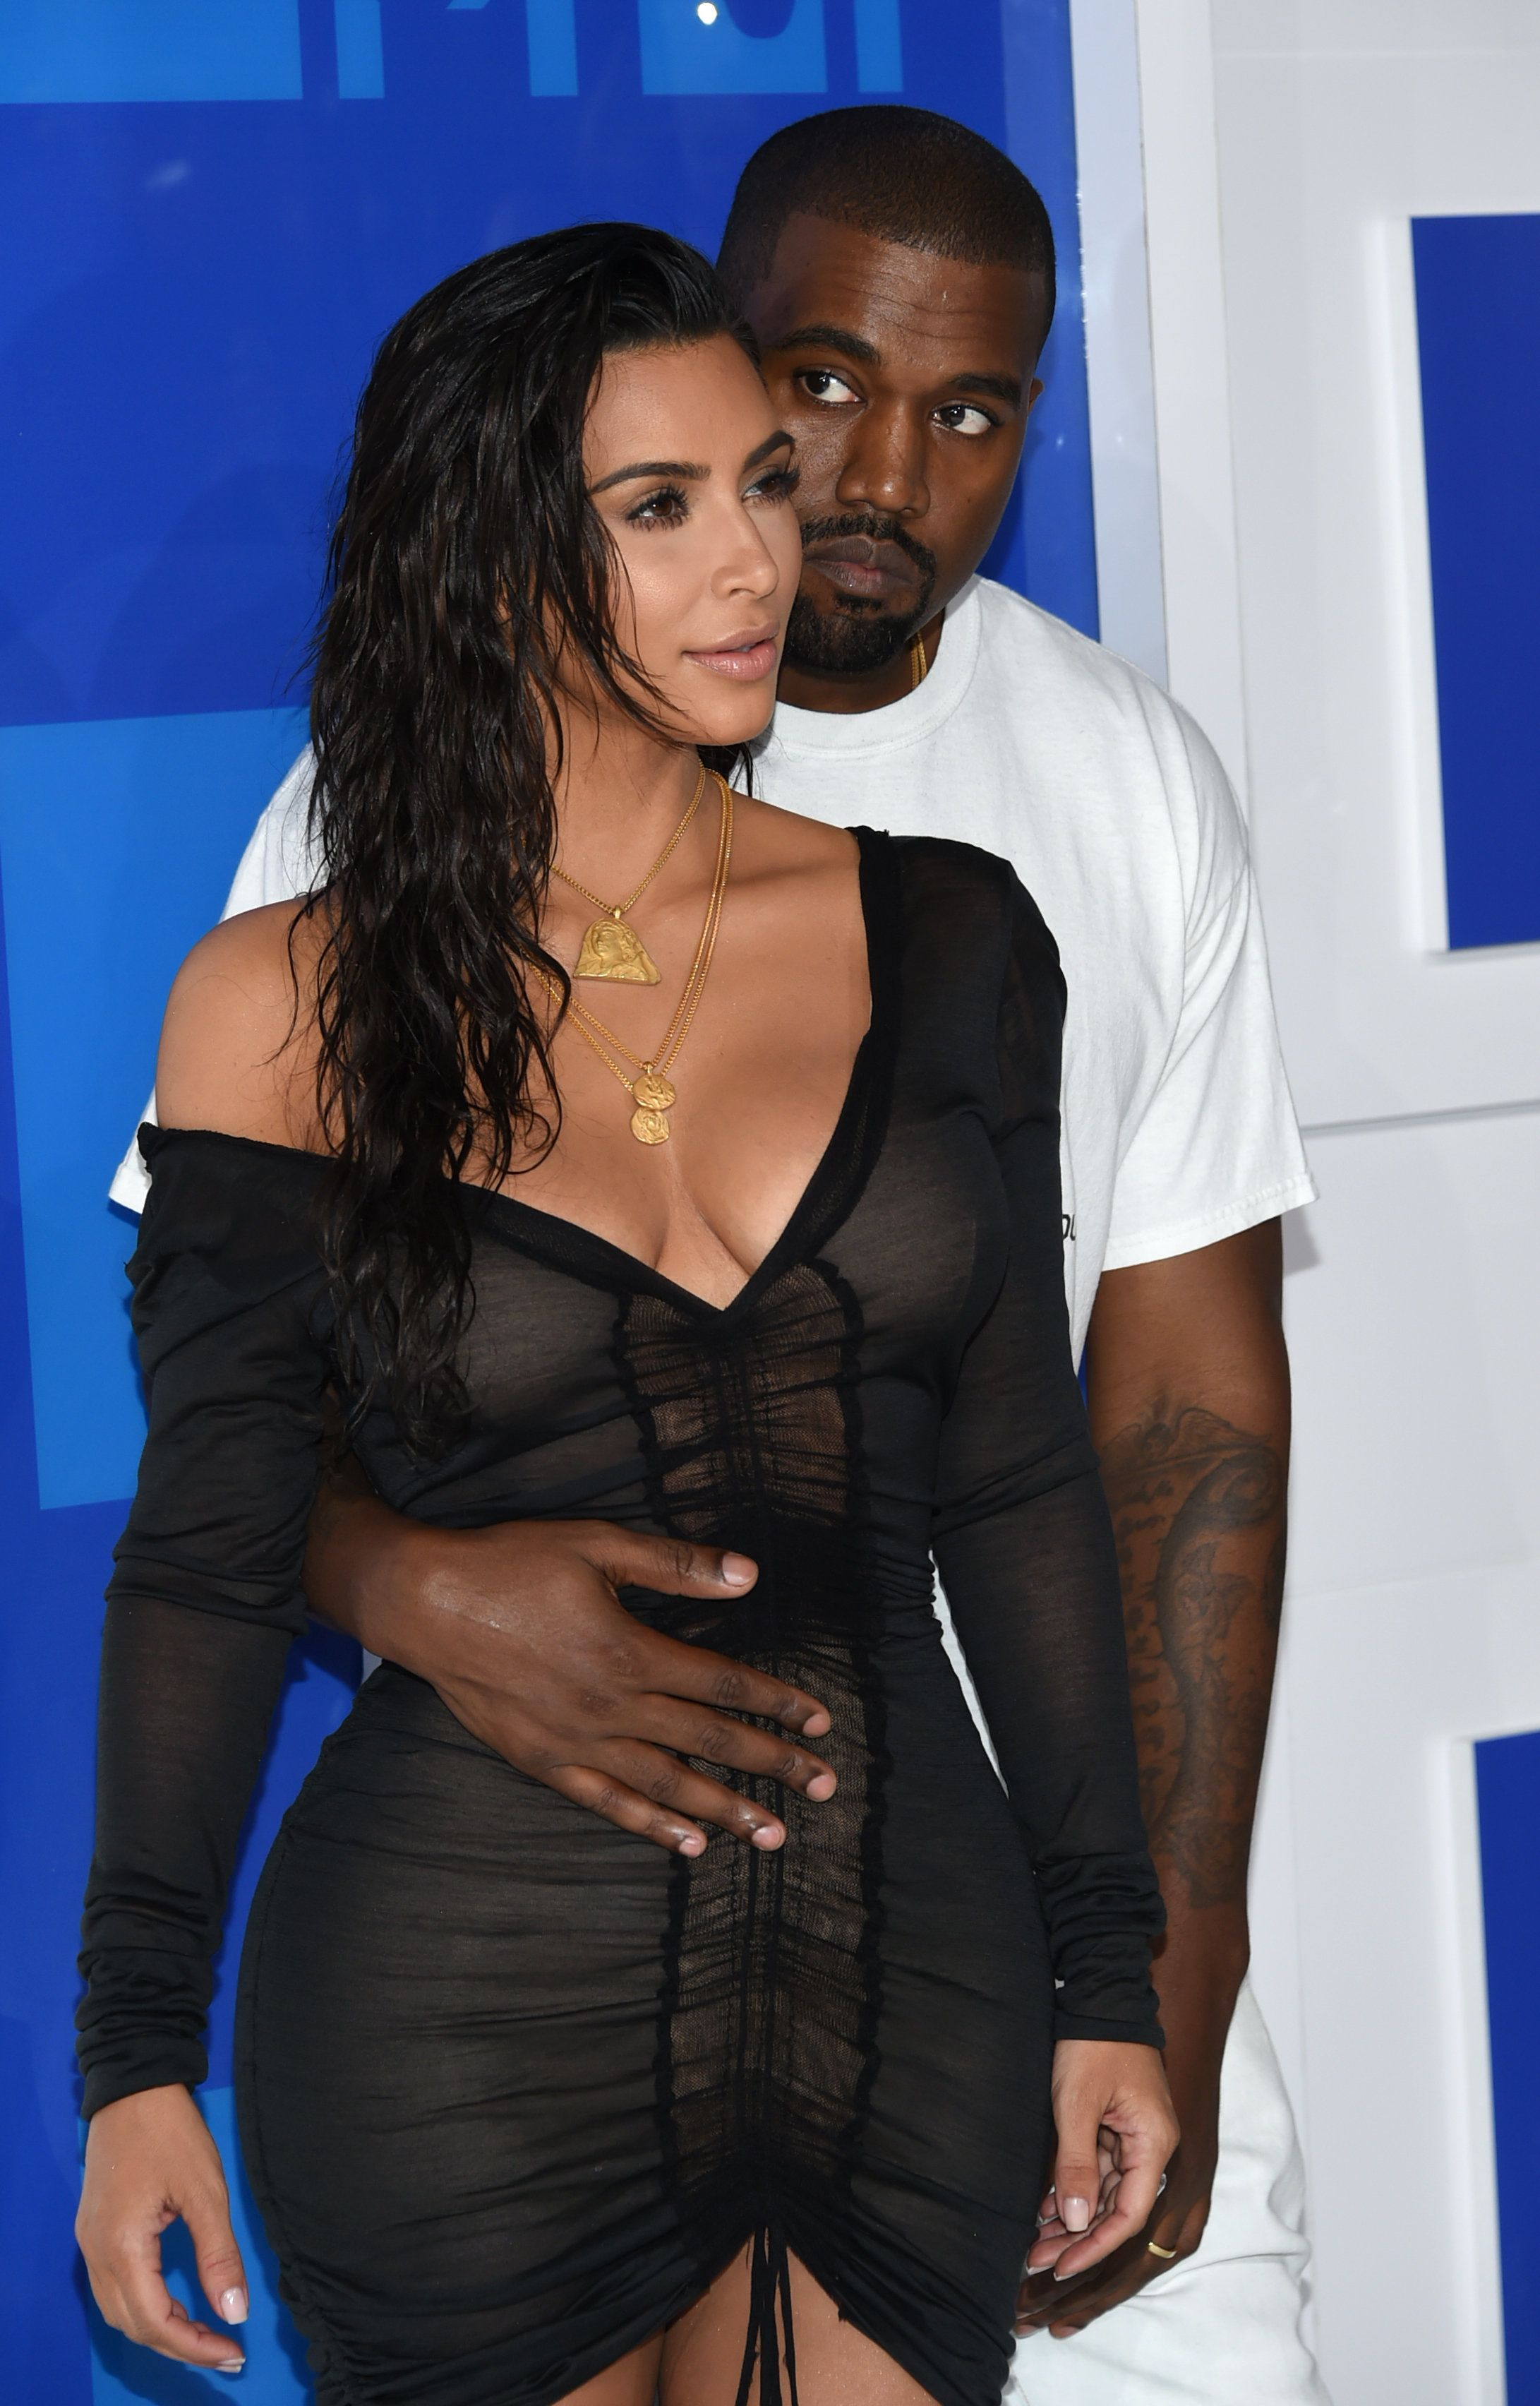 Kim and Kanye at the MTV Video Music Awards in the